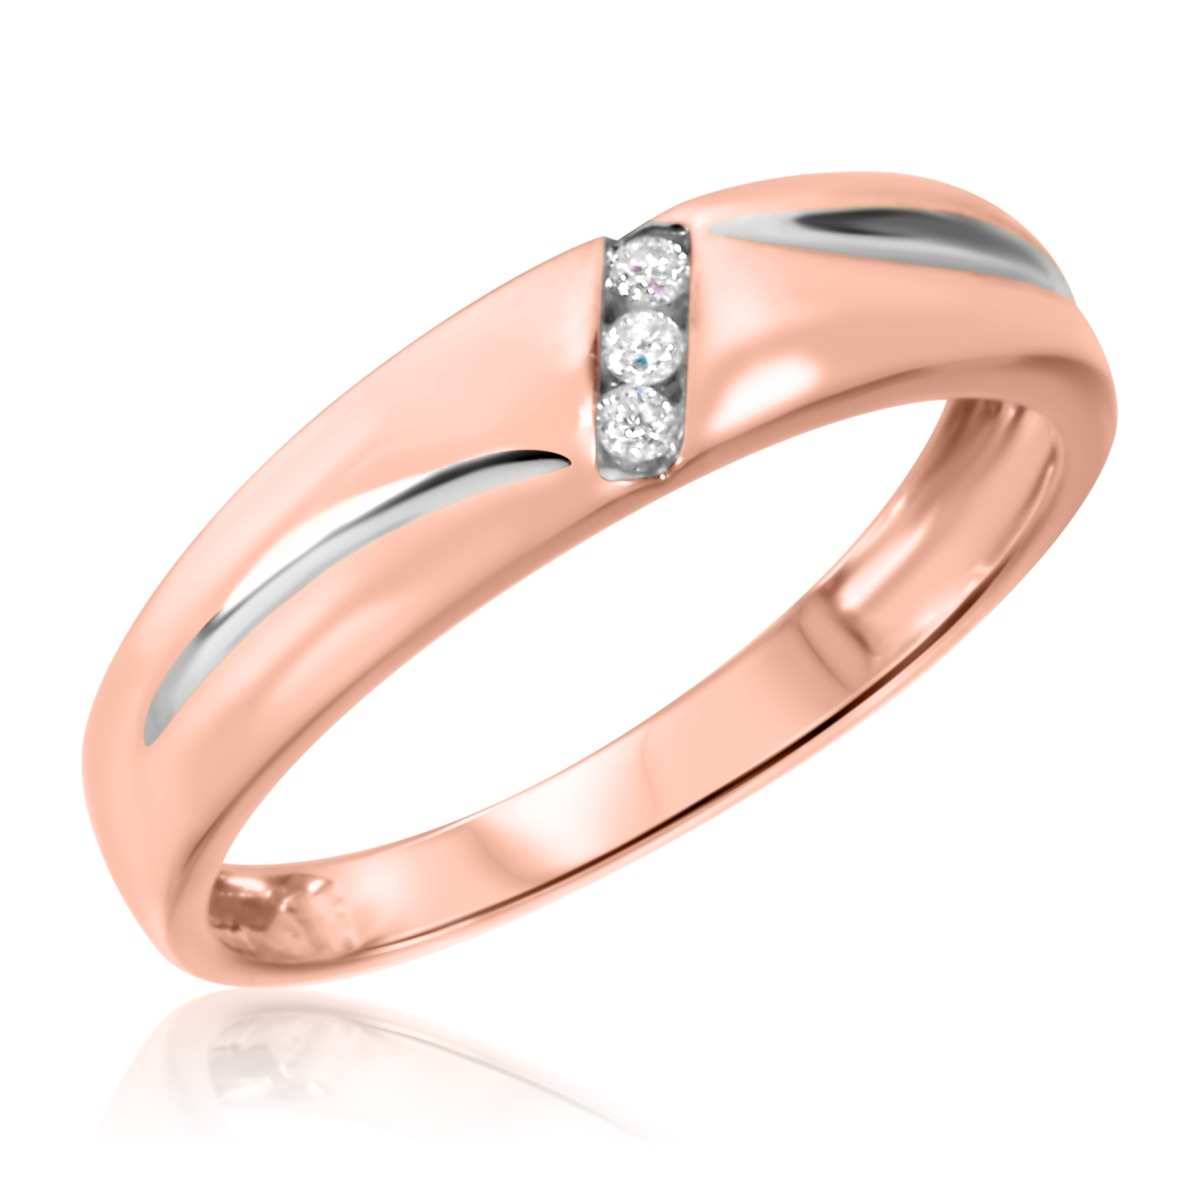 1 10 CT TW Diamond His And Hers Wedding Band Set 14K Rose Gold